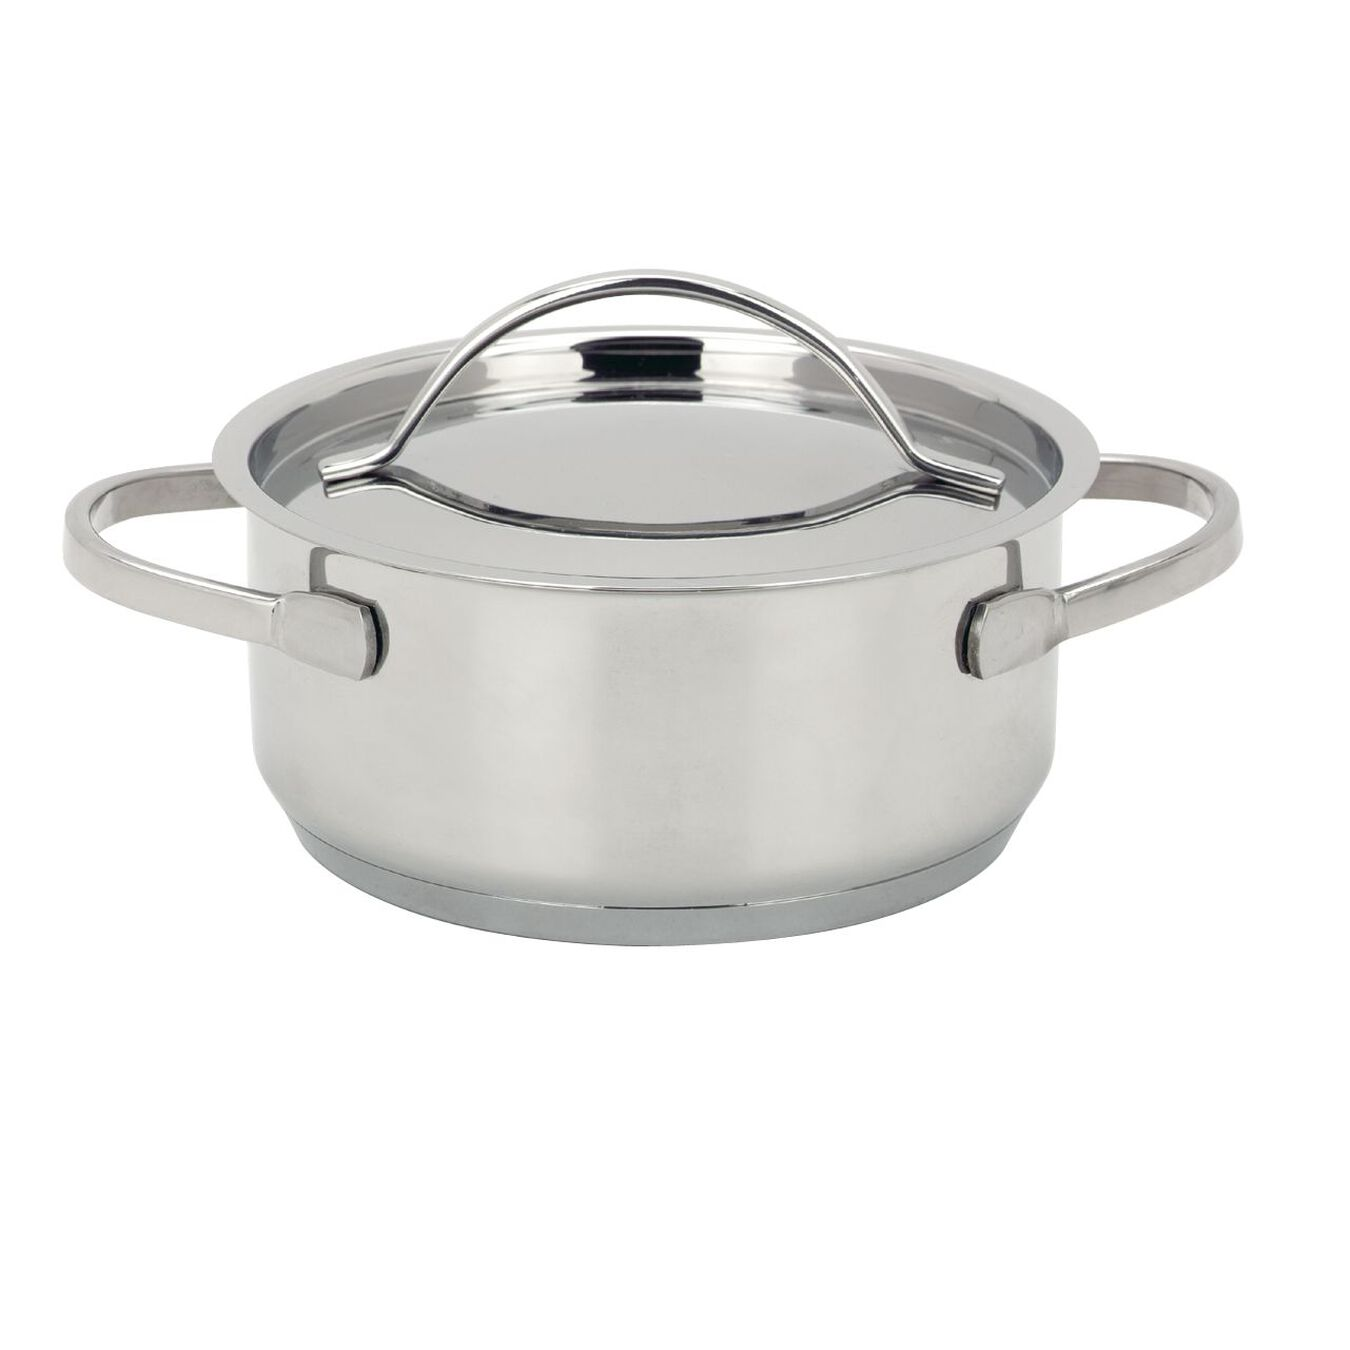 4-pc Stainless Steel Mini Dutch Oven Set,,large 2